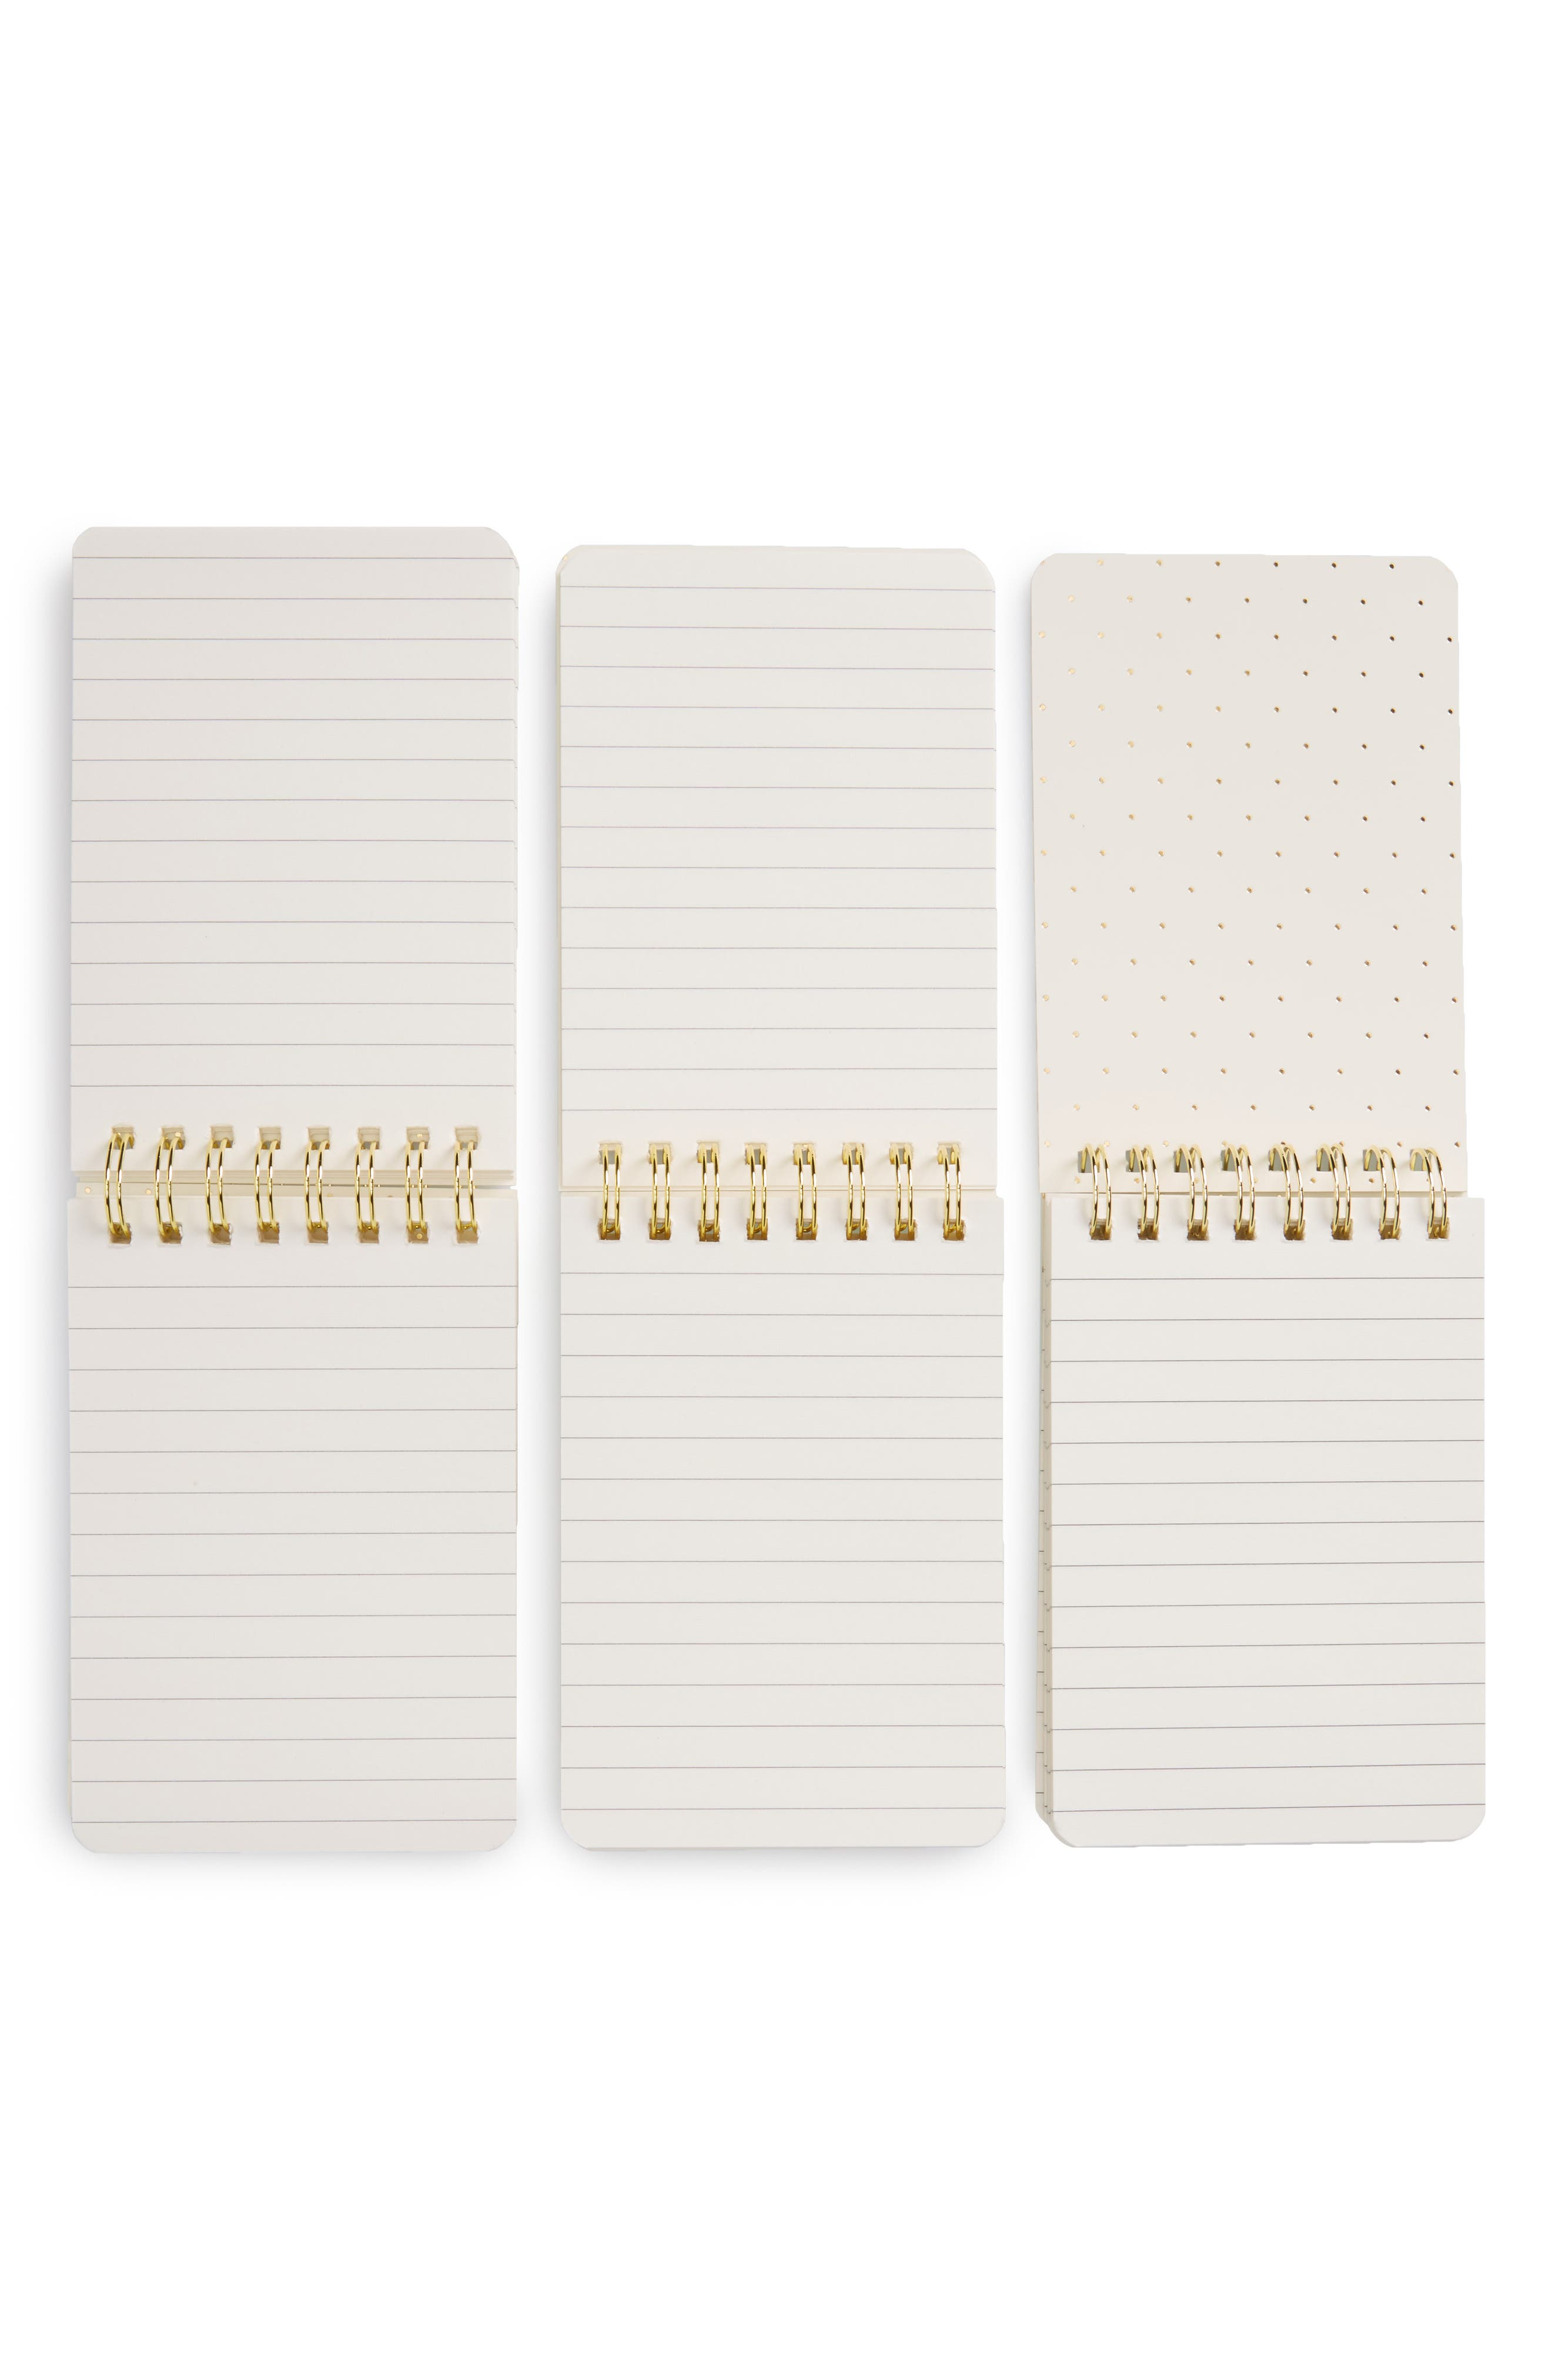 set of 3 mini spiral notepads,                             Alternate thumbnail 2, color,                             Photographic